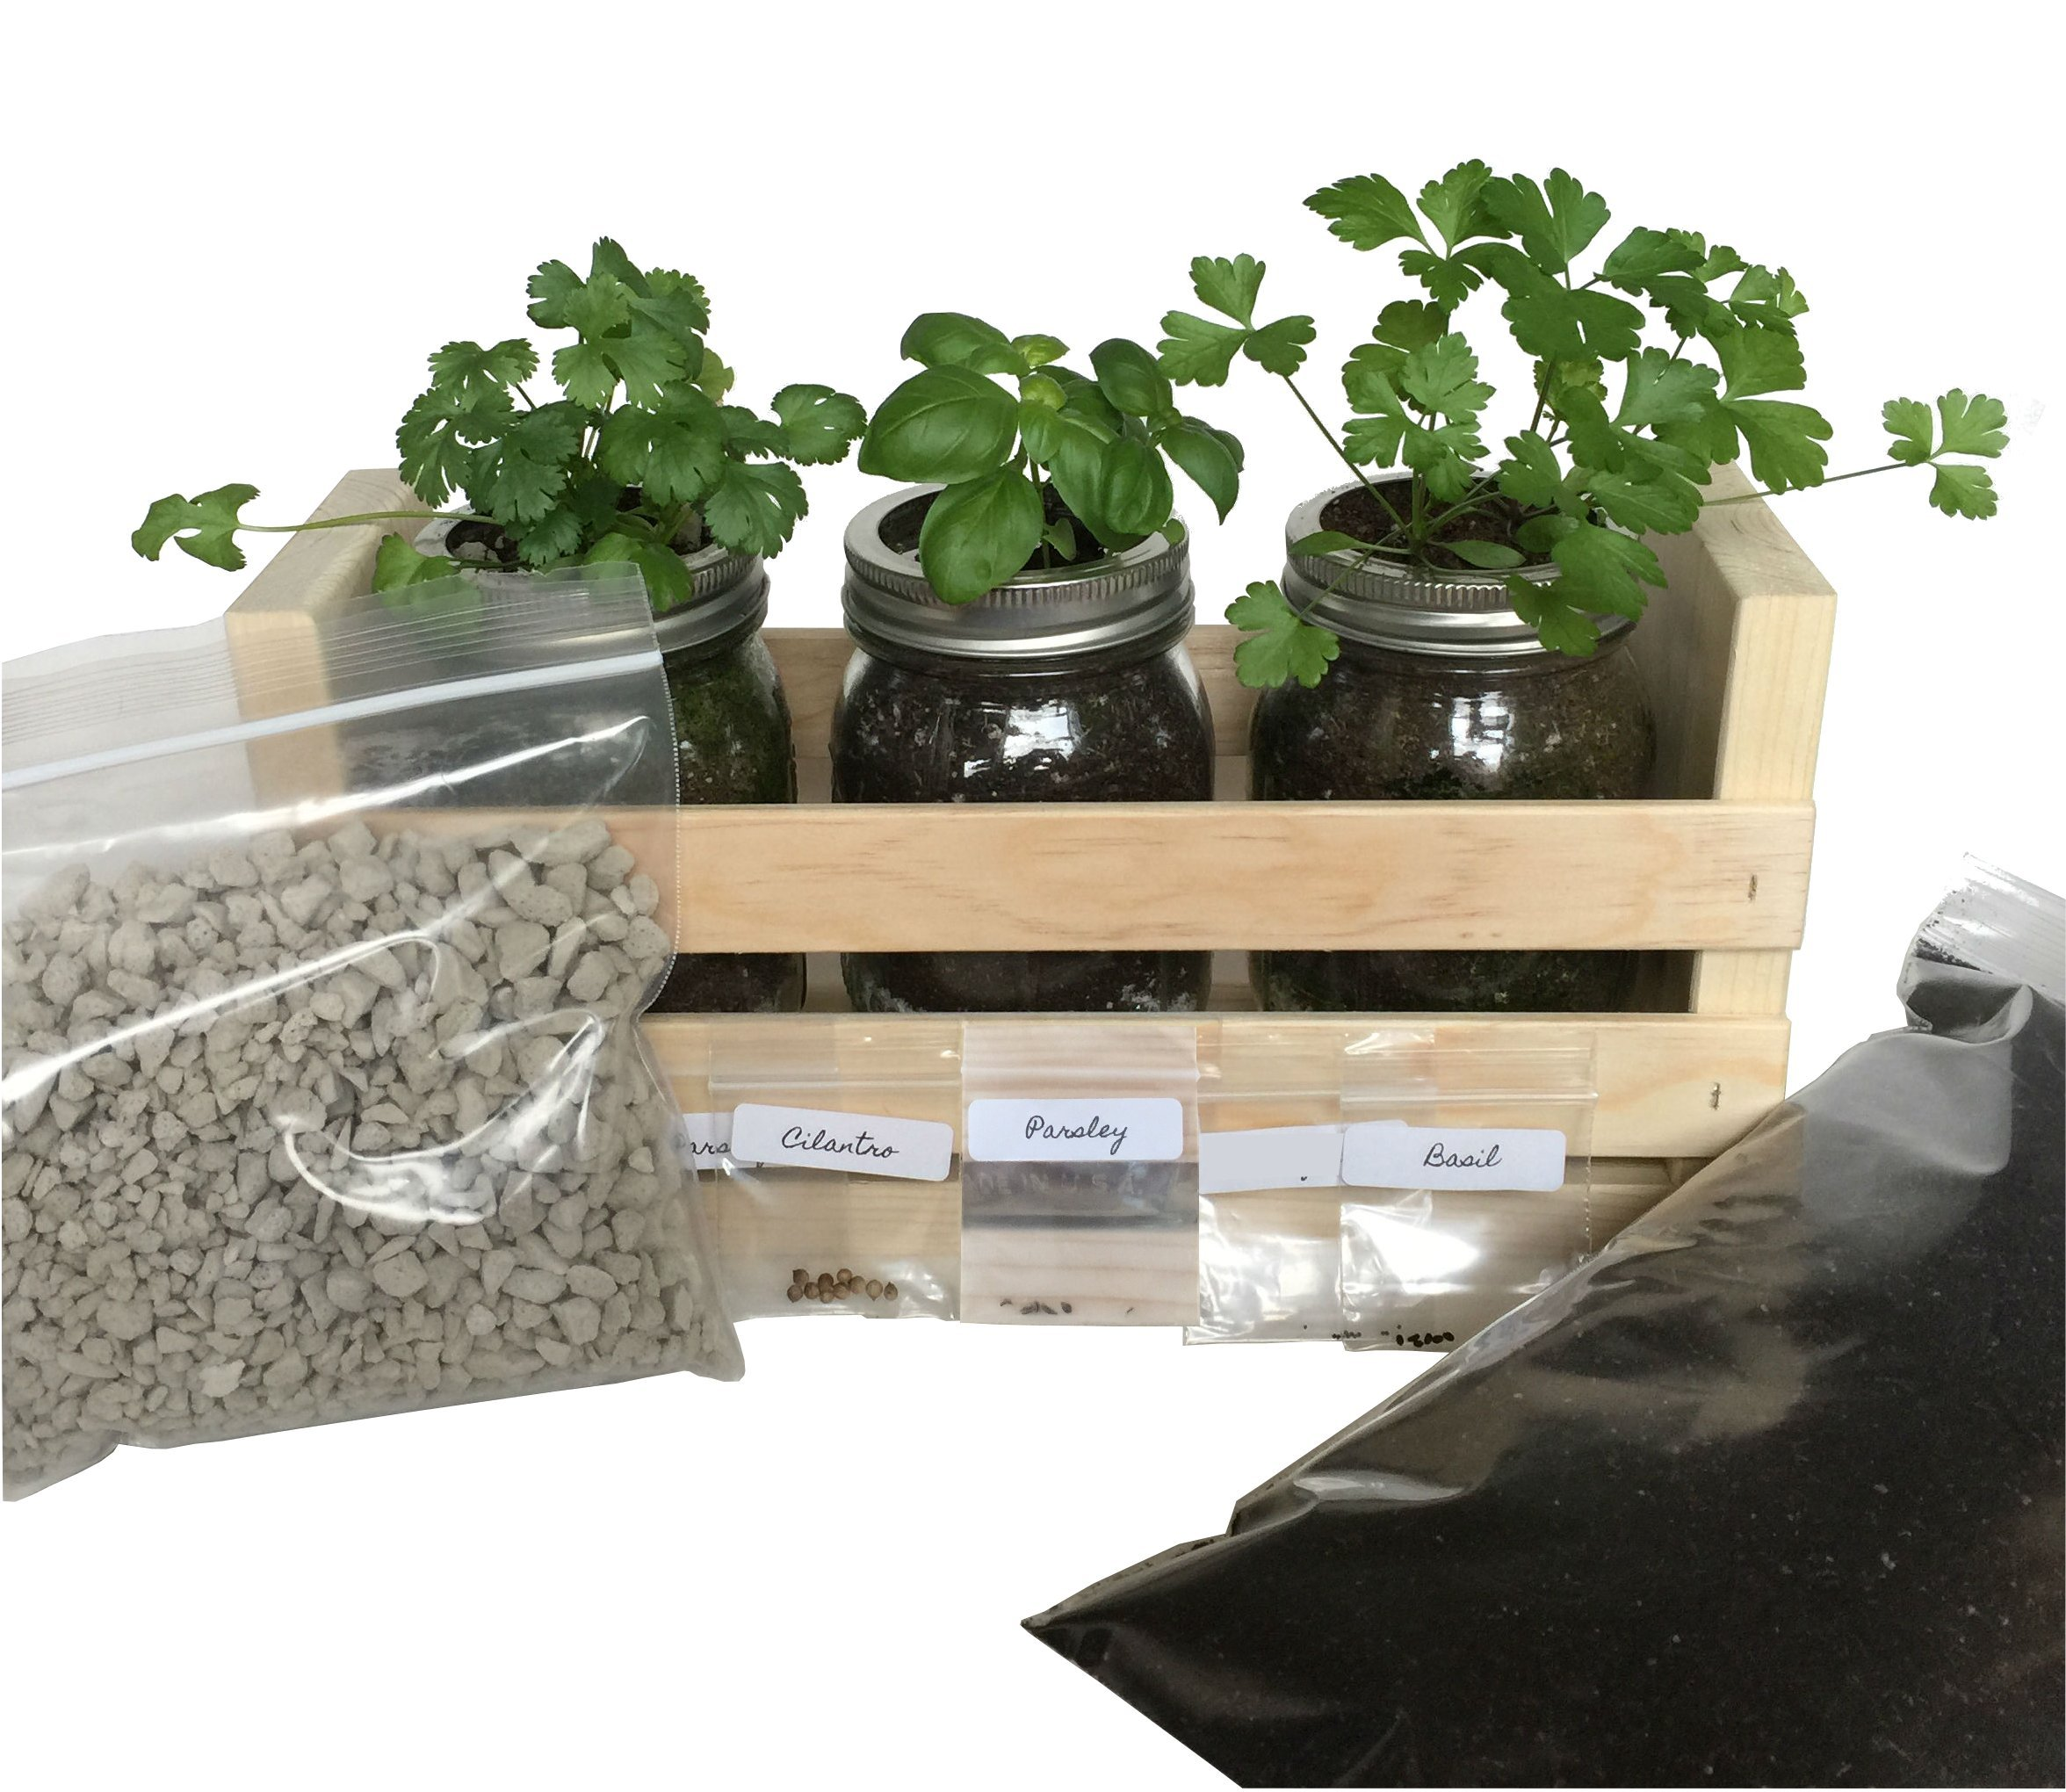 Indoor Herb Garden Kit -Great for Growing an Indoor Herb Garden -100% Satisfaction Guaranteed, Includes Everything You Need to Grow a Herb Garden (Cilantro,Basil,Parsley) in a Simple Container